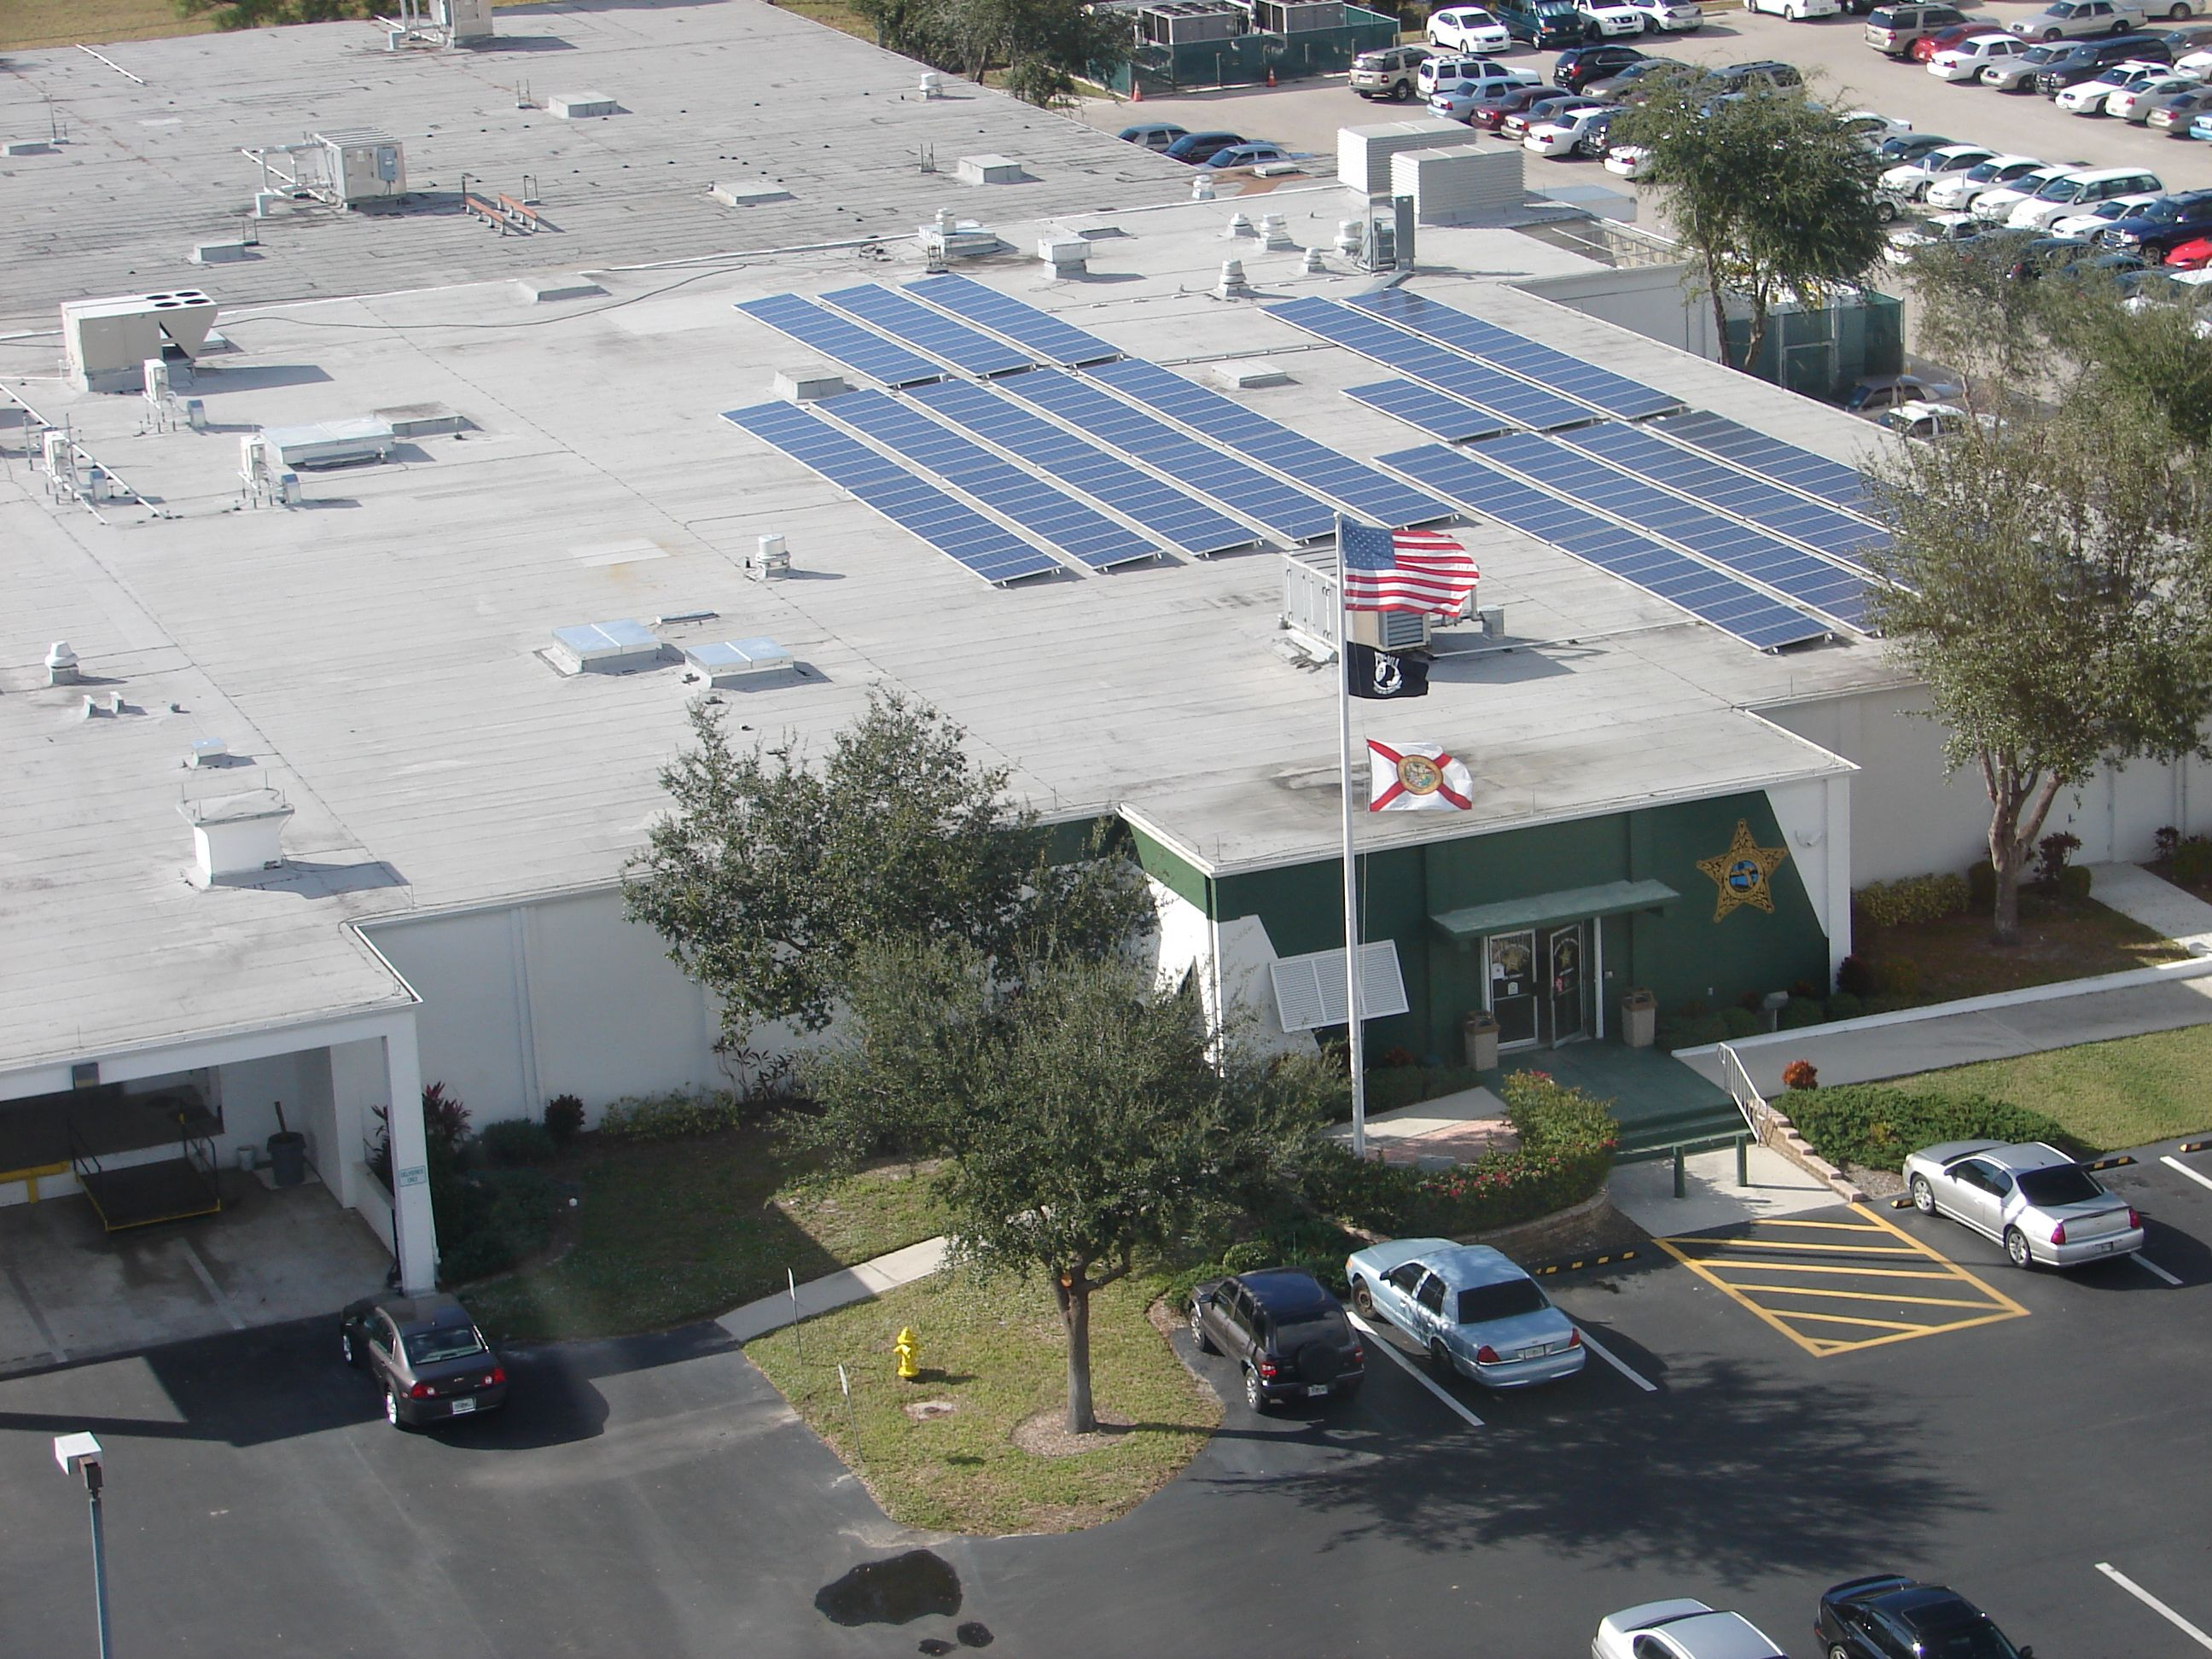 Solar Electric at the Lee County Public Safety Building